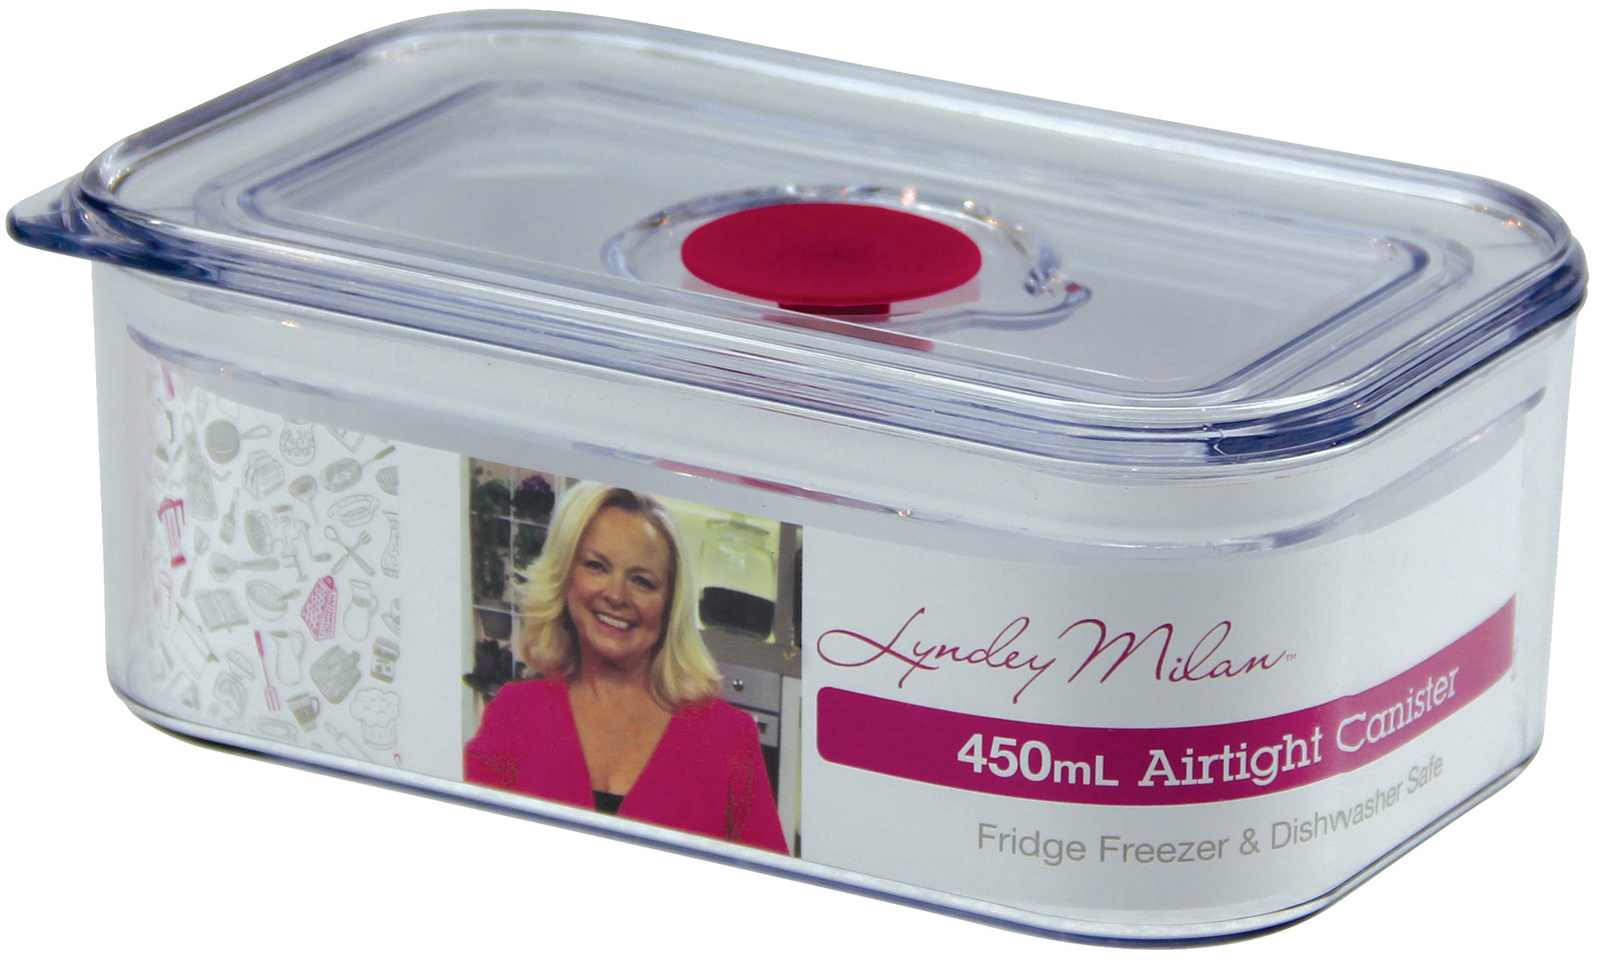 Lyndey Milan Container (450ML) image